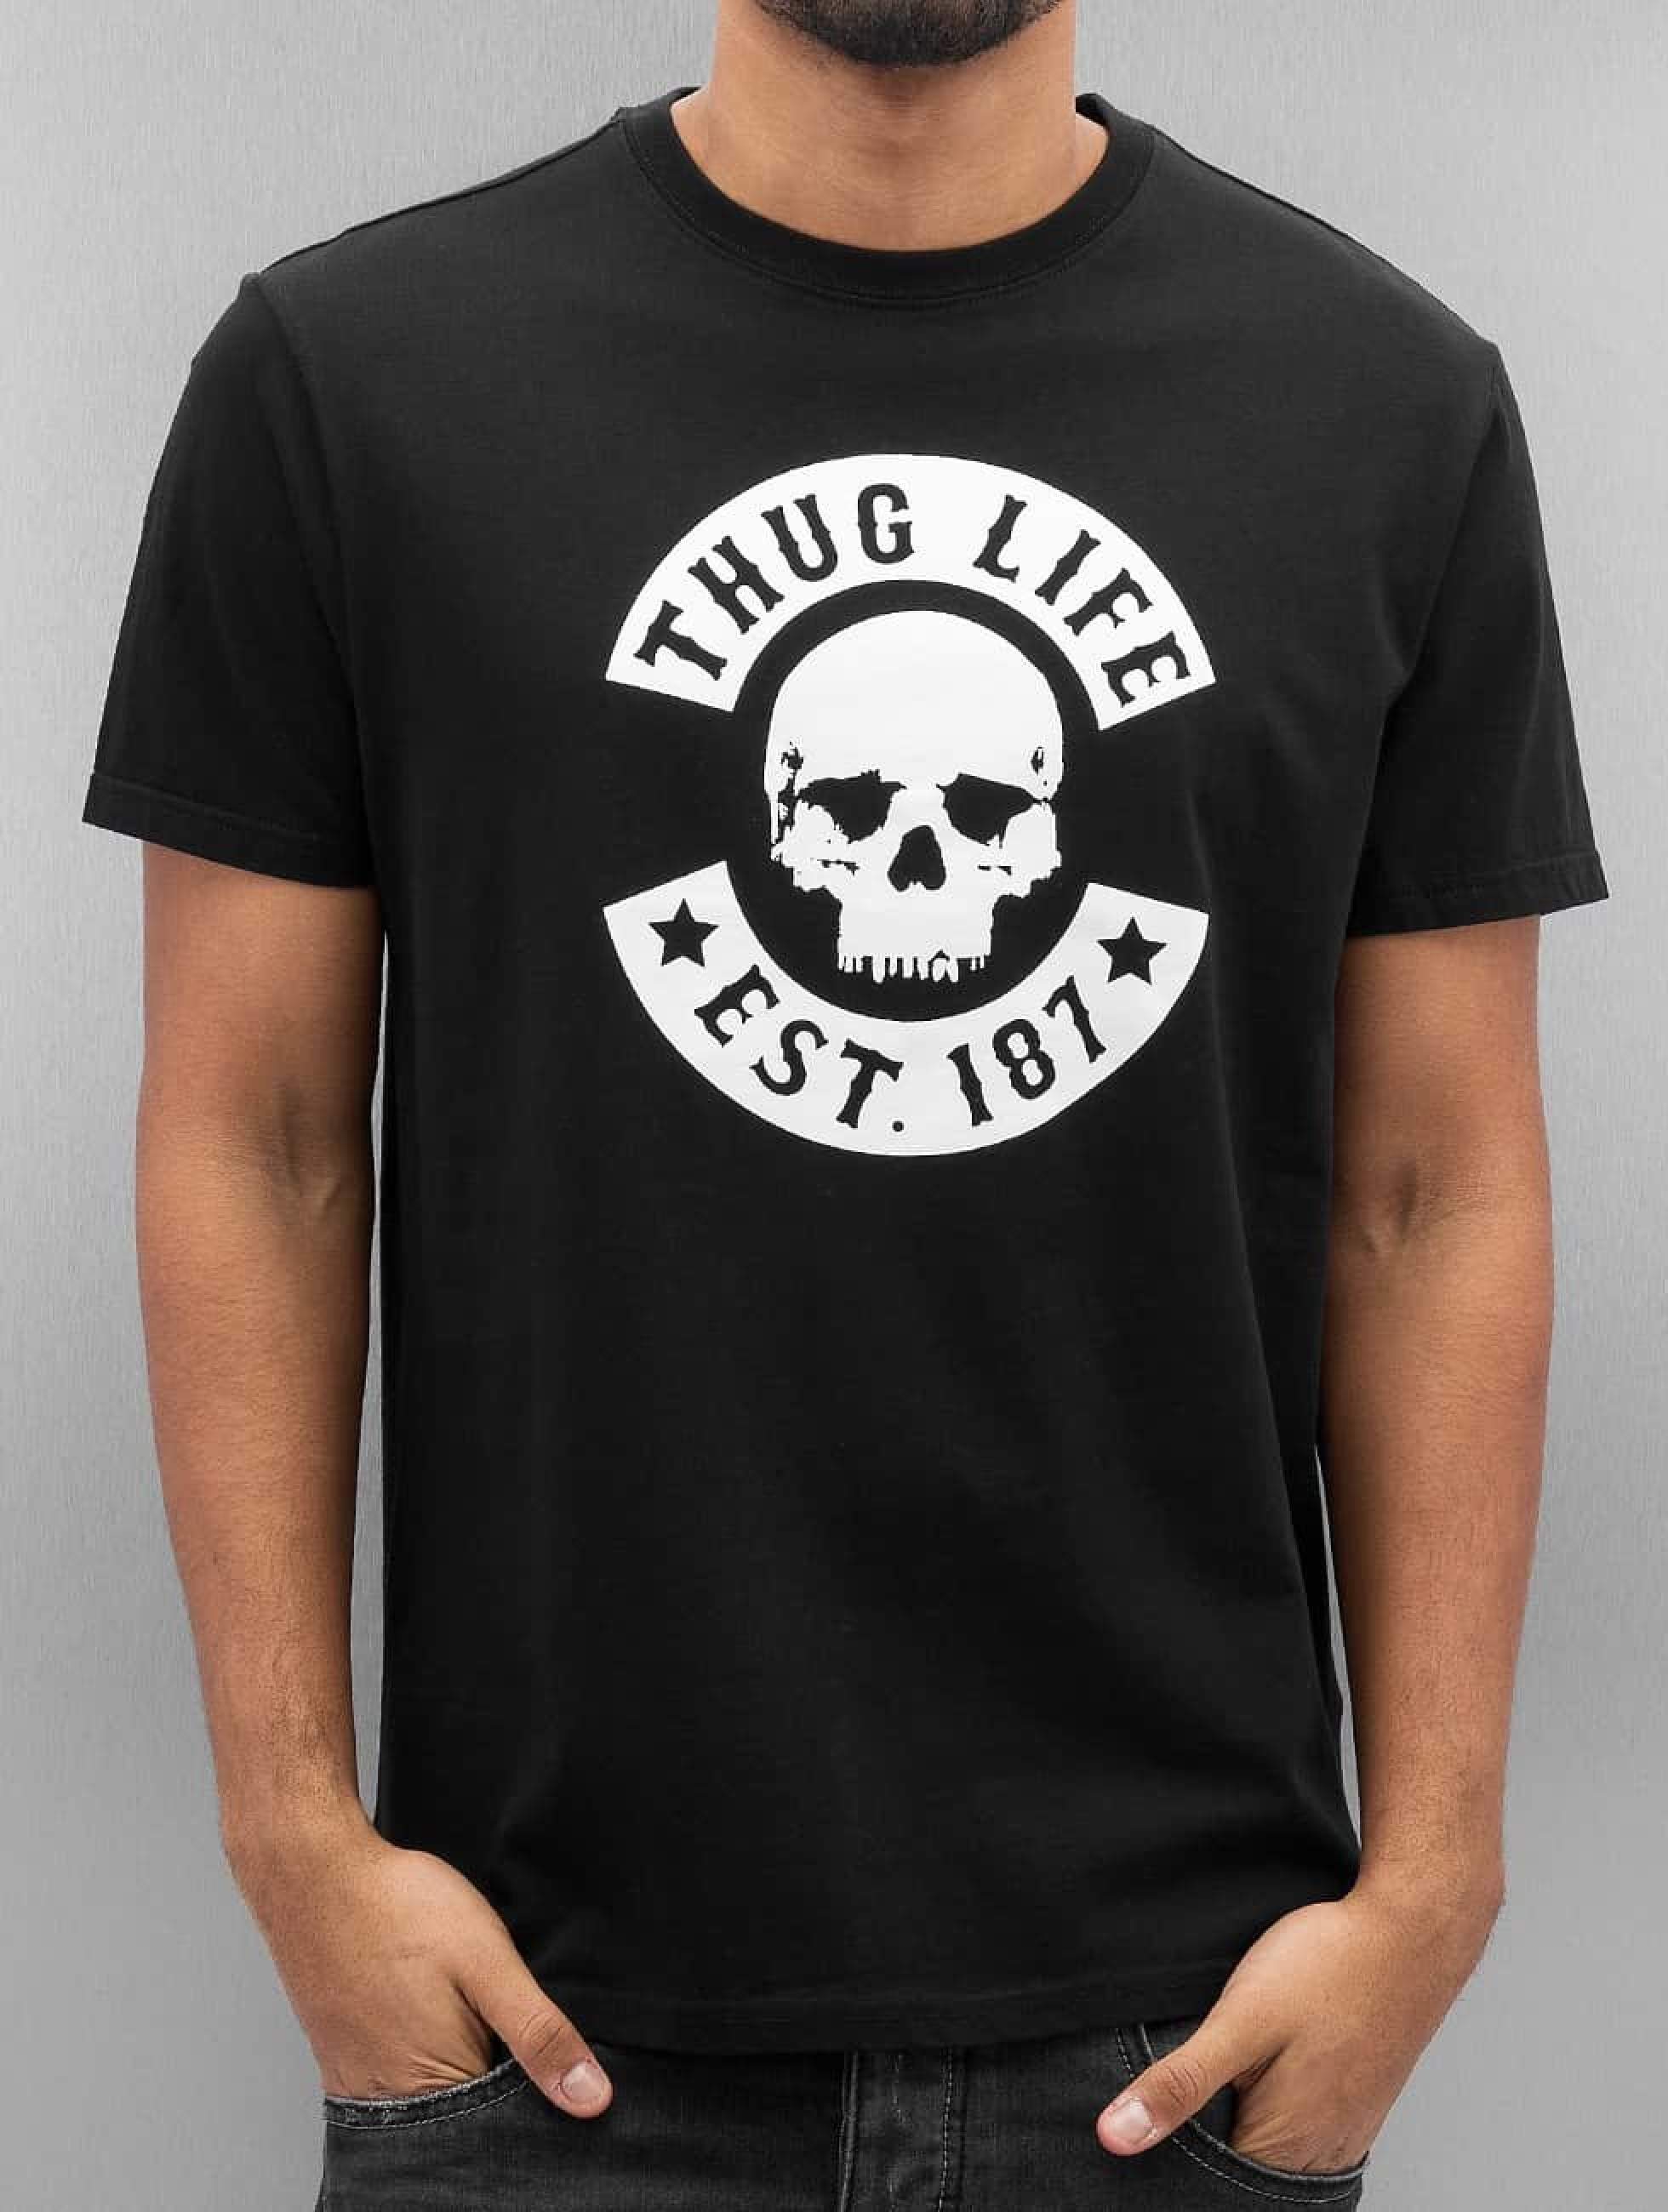 Thug Life / T-Shirt Zoro in black 3XL